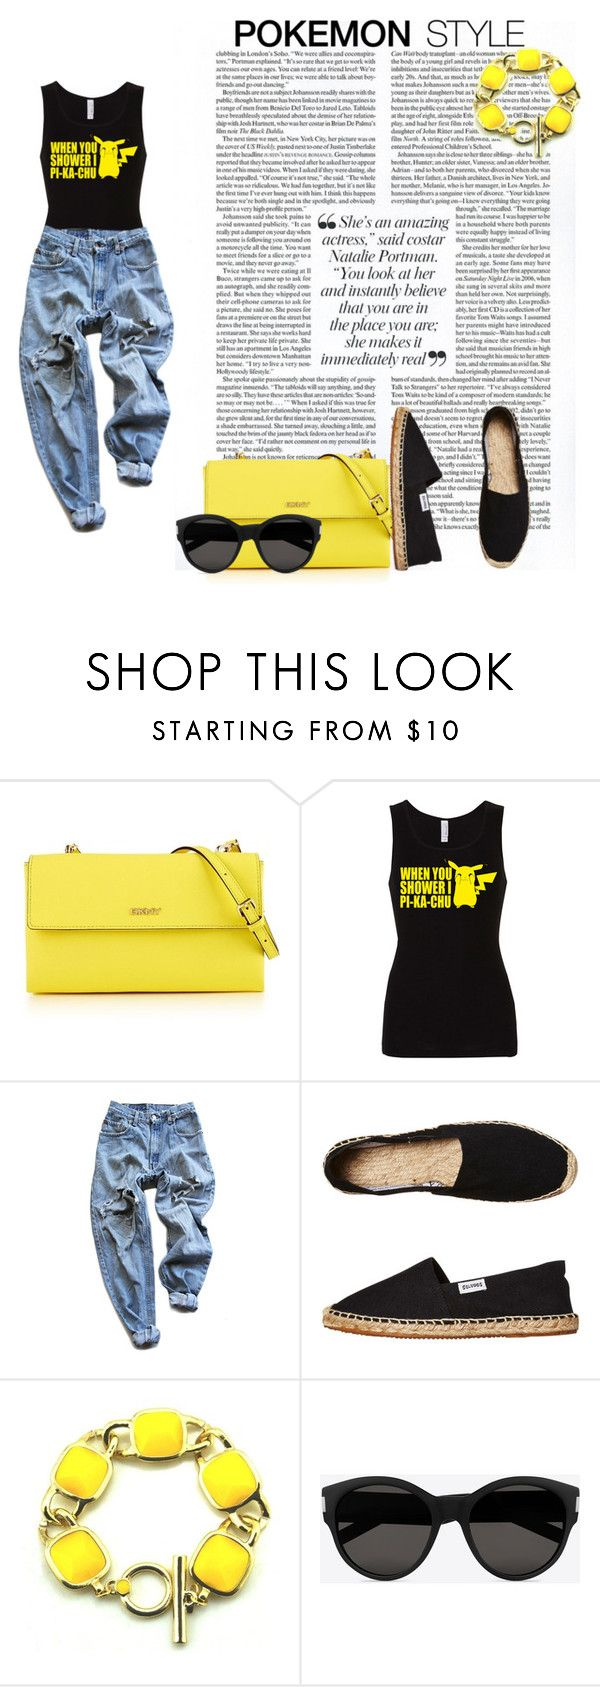 Pokemon style by adriana-claudia on Polyvore featuring Levi's, Soludos, DKNY, Yves Saint Laurent, SCARLETT and pokemonstyle